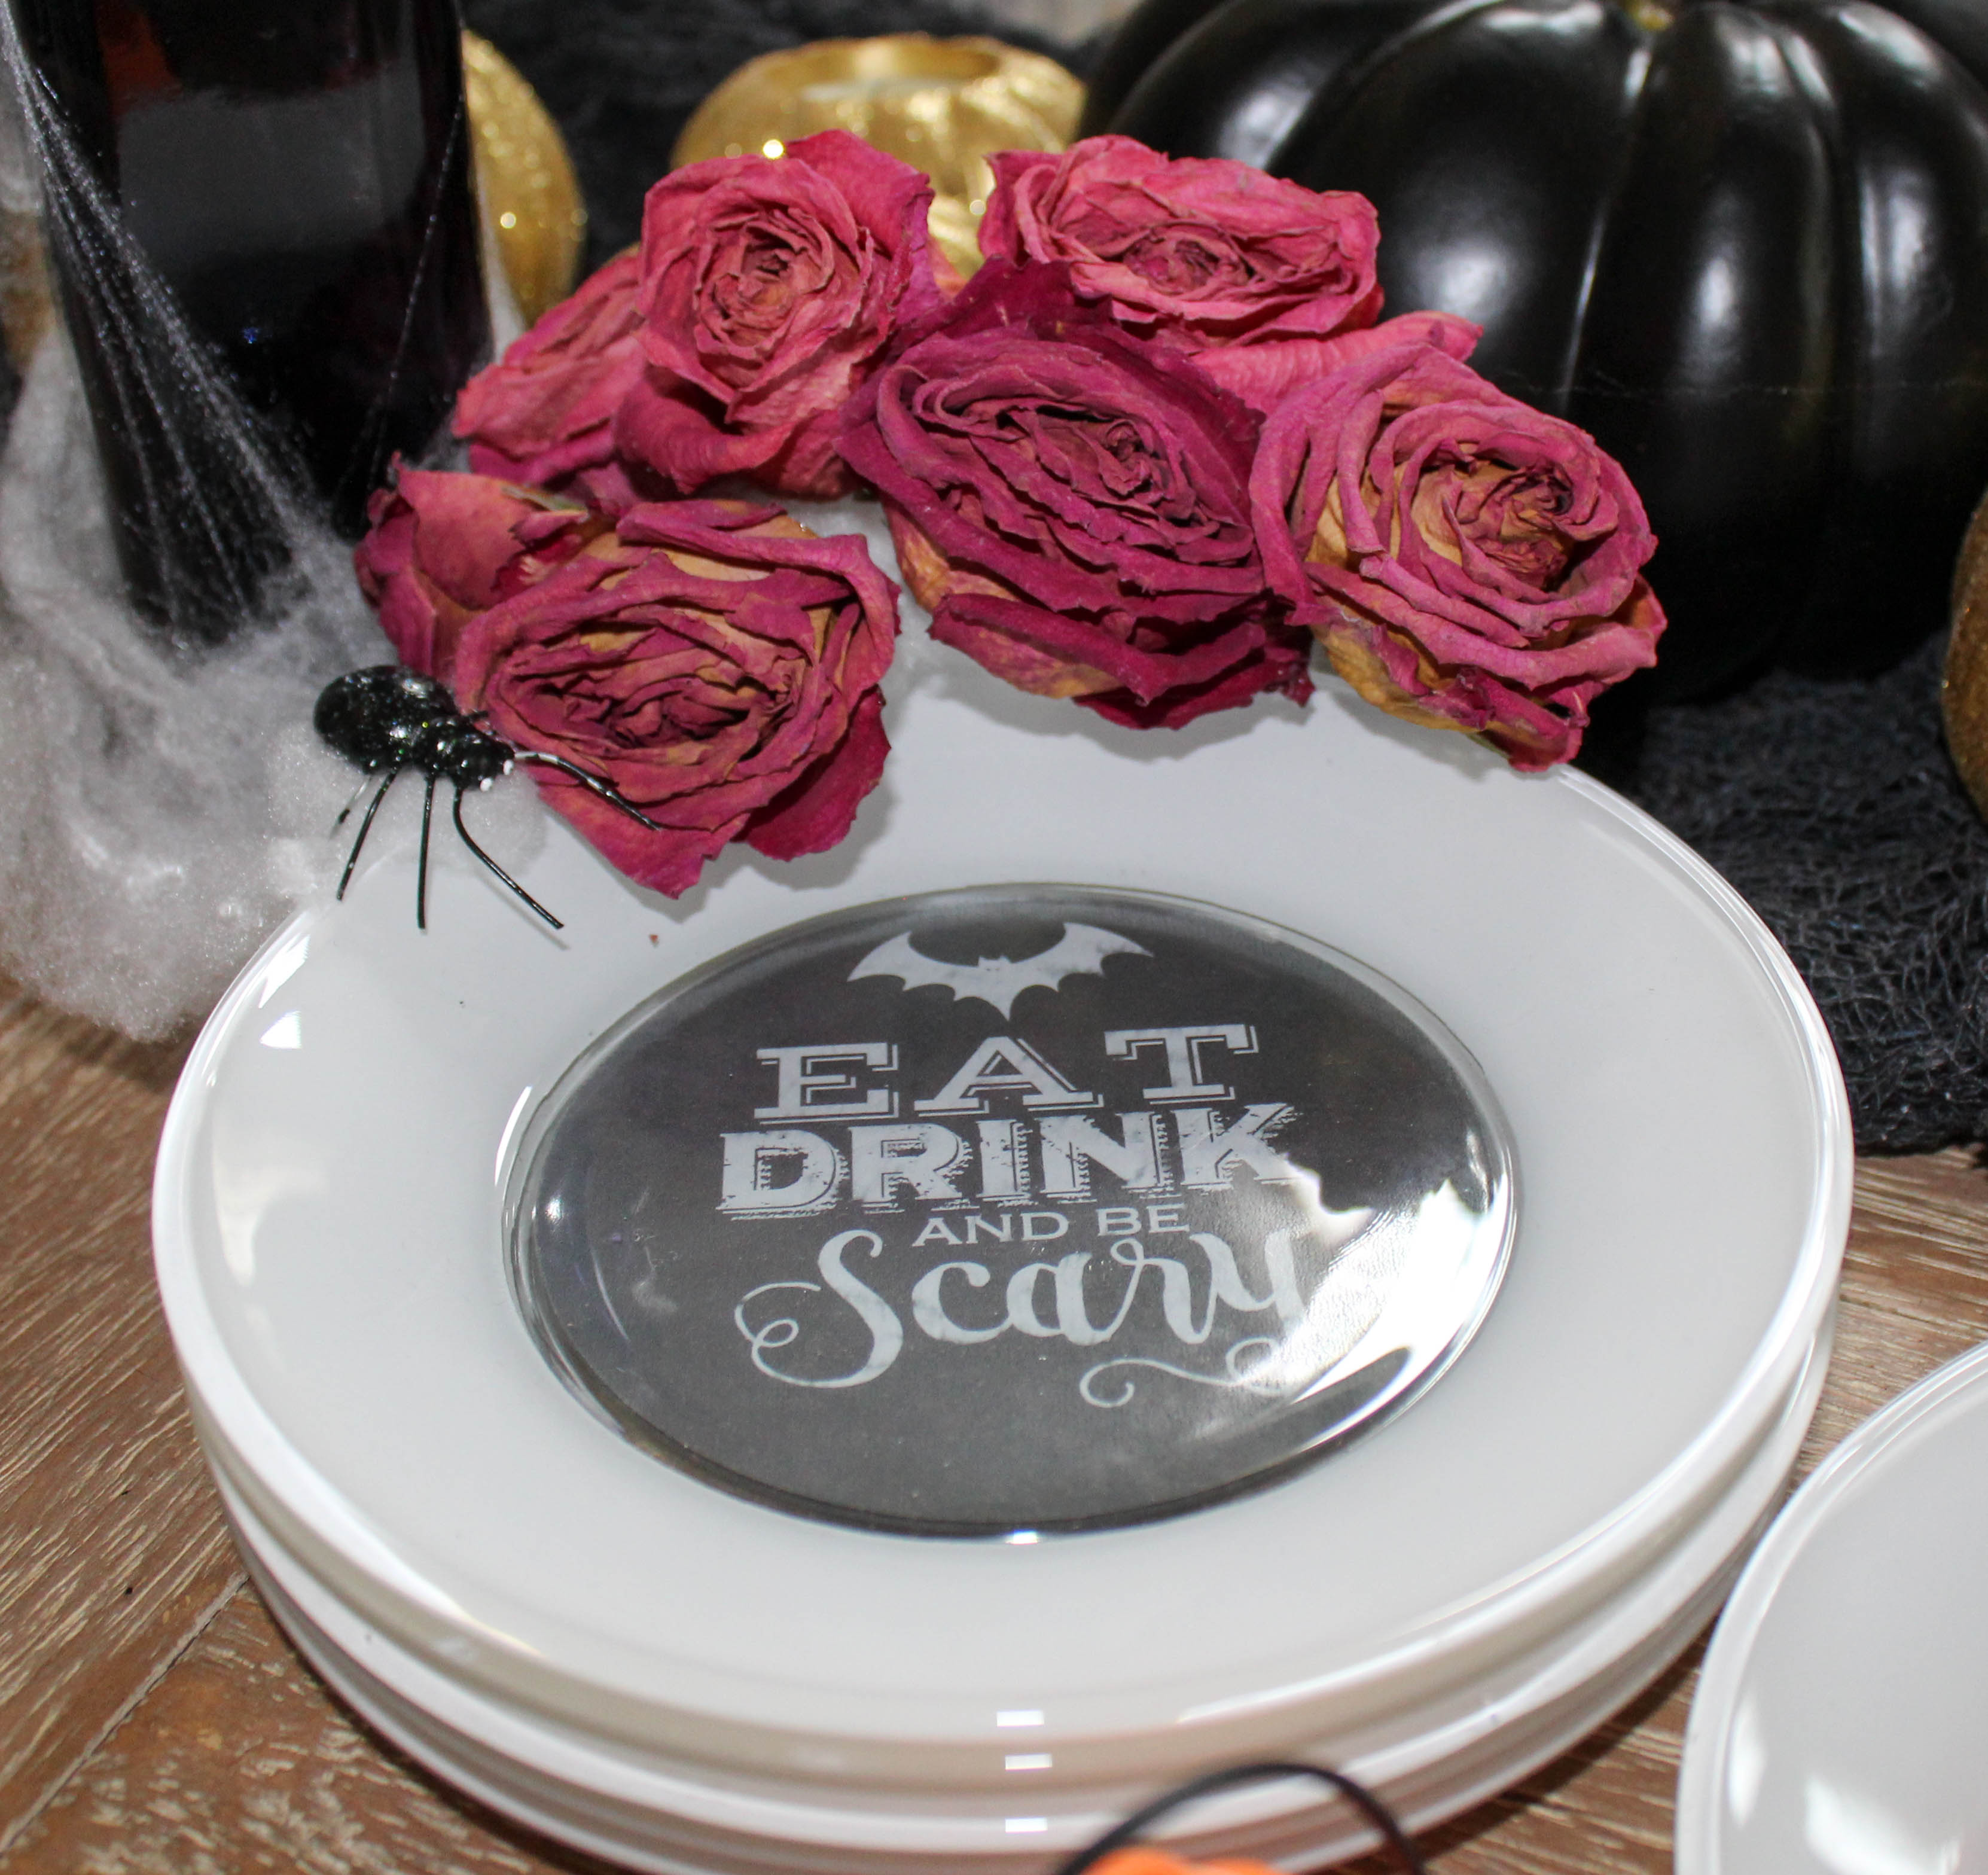 design-your-own-plate-make-custom-plate-halloween-dishes-10